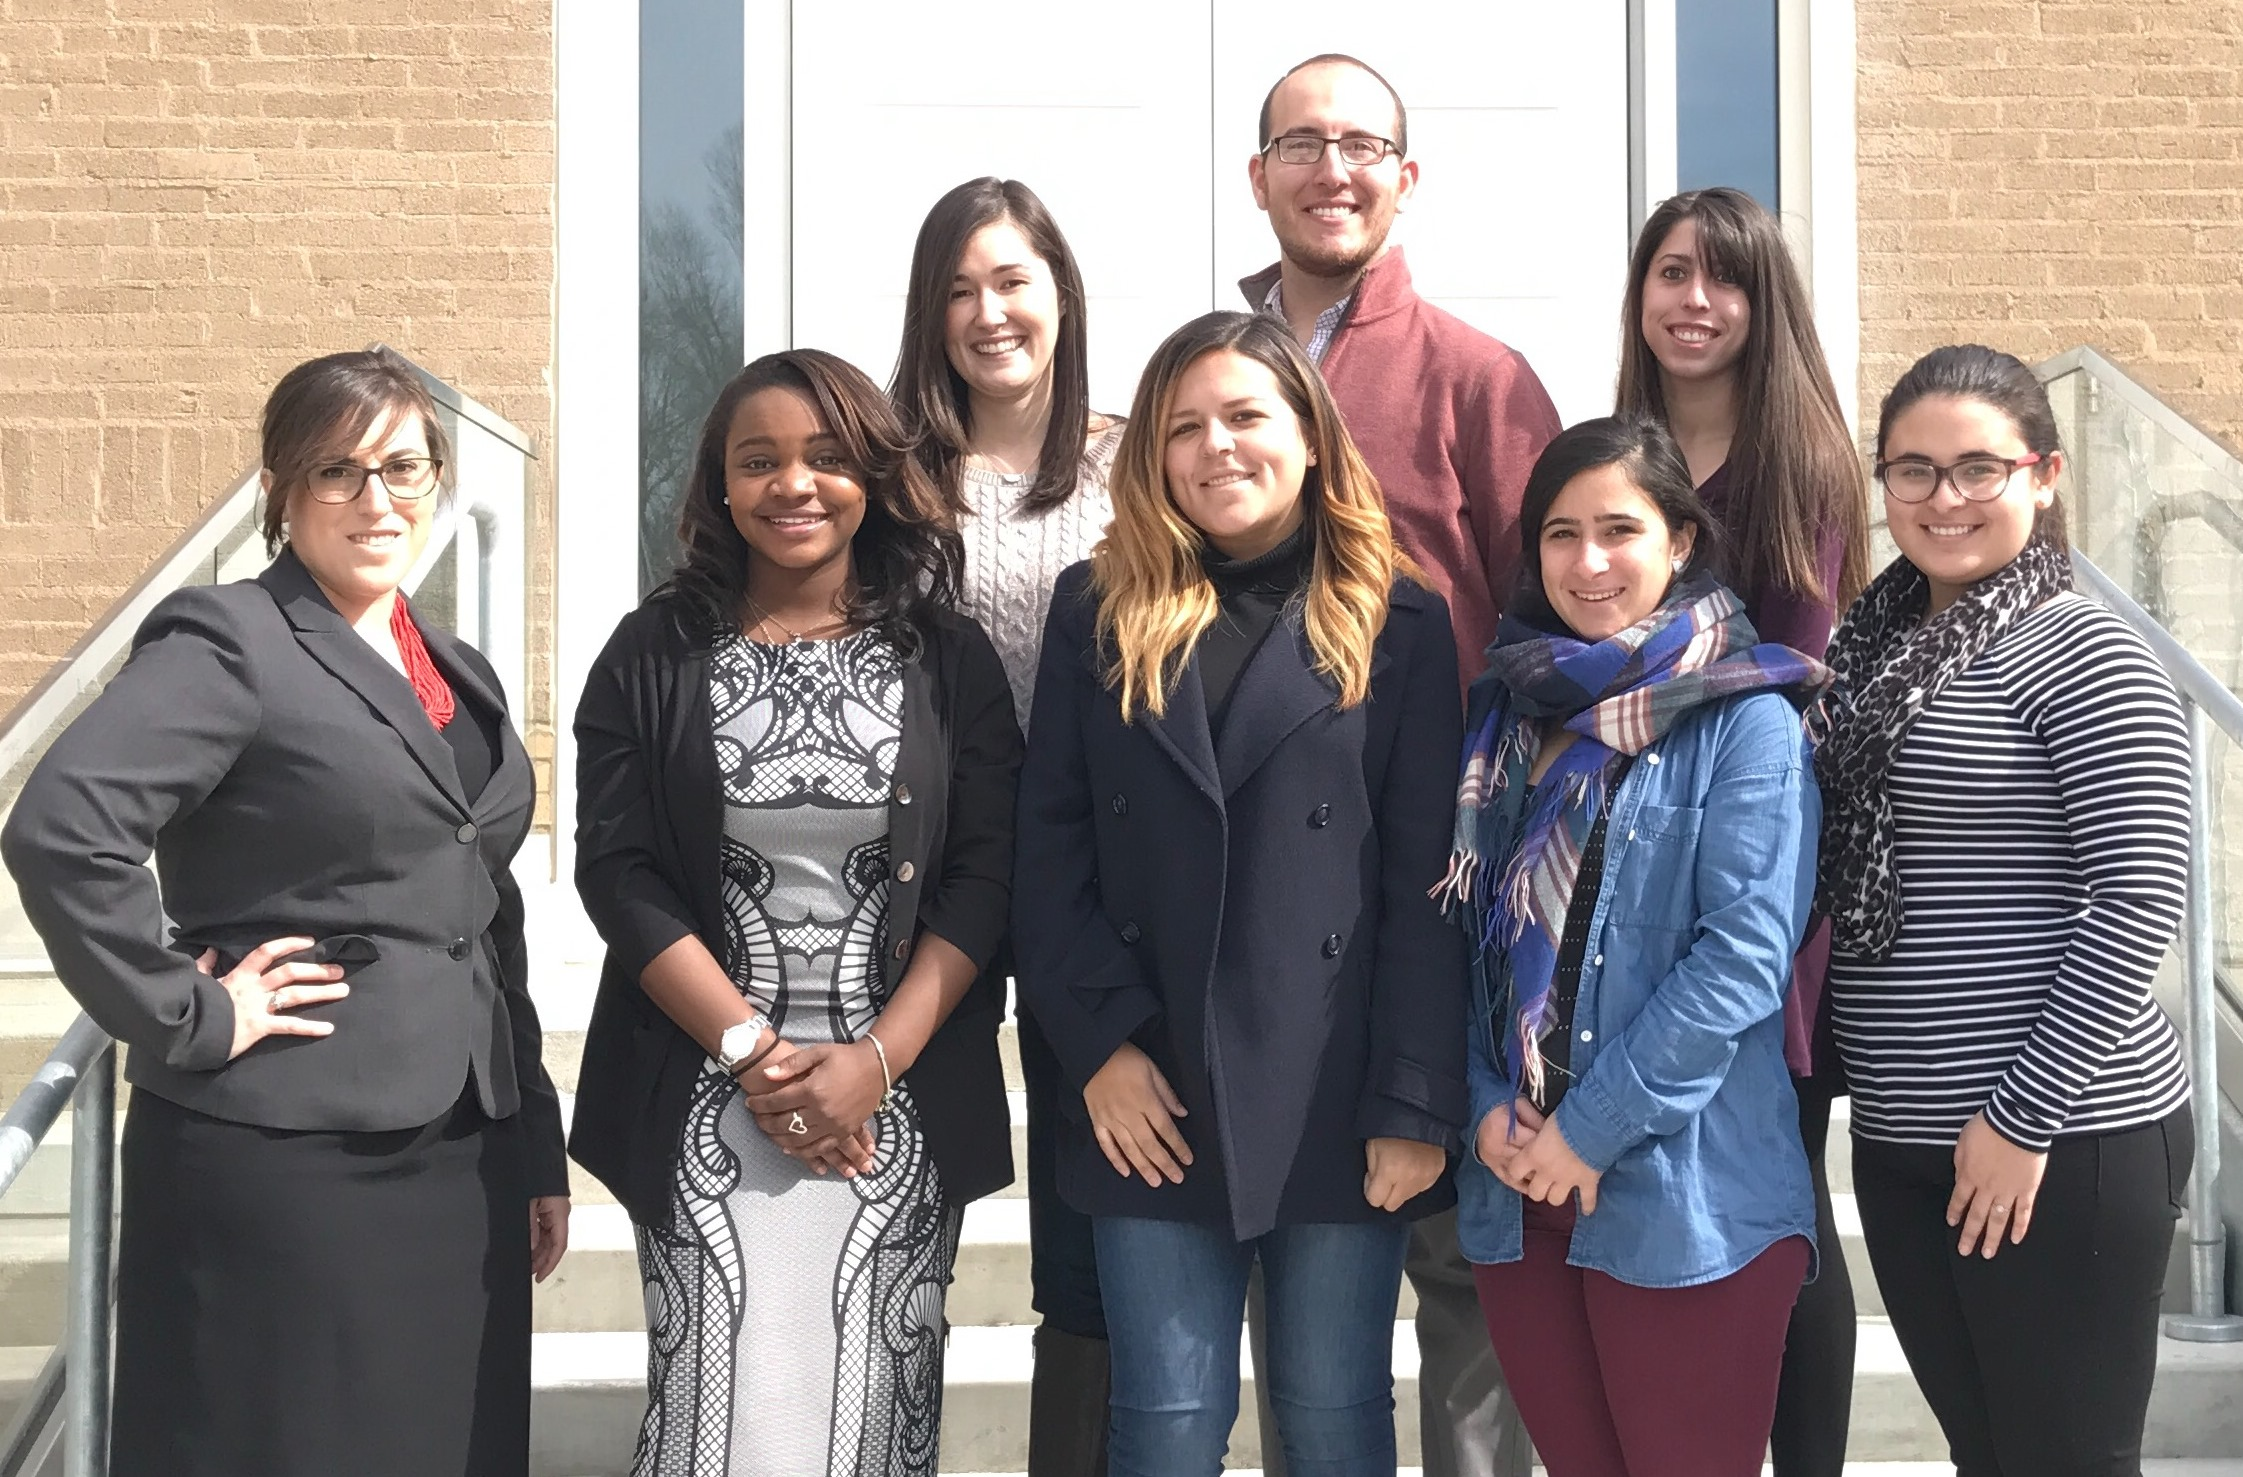 Business Law Review Launched Five Years Ago Increases Journal Opportunities For Auwcl Students American University Washington College Of